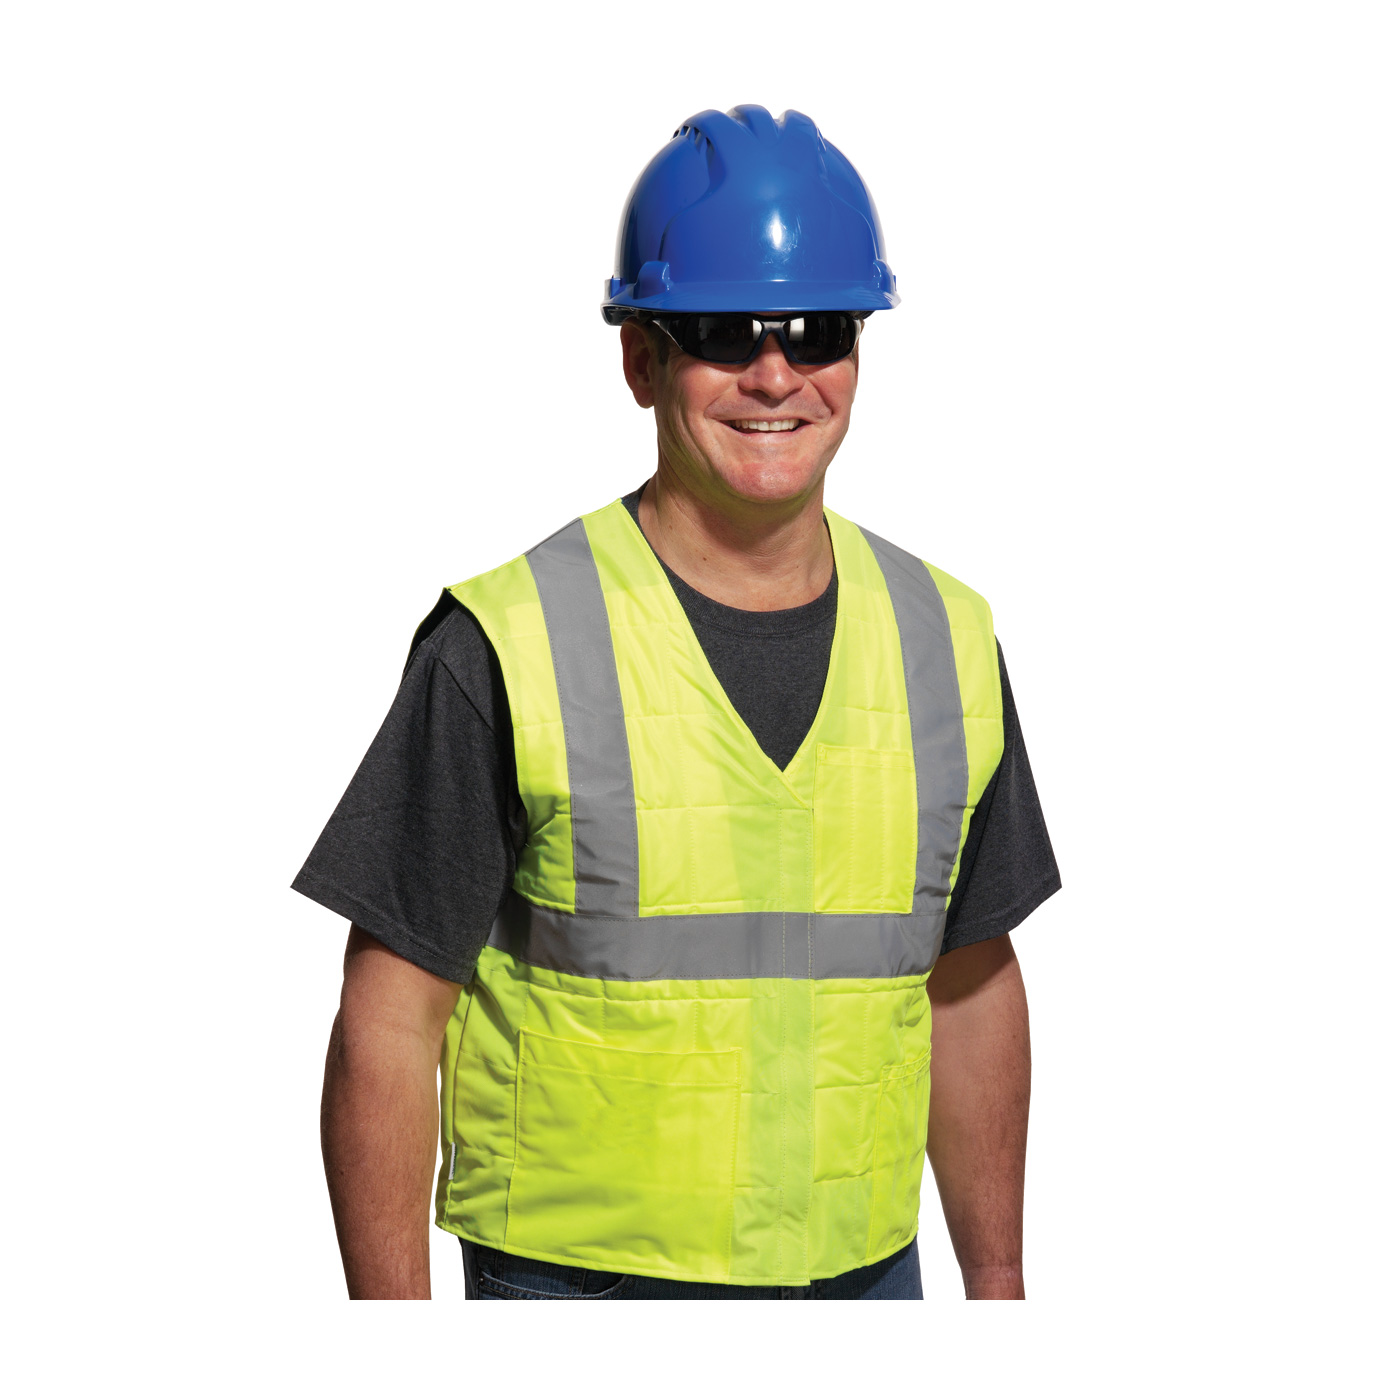 Evaporative Cooling Clothing : Value evaporative cooling vest protective industrial